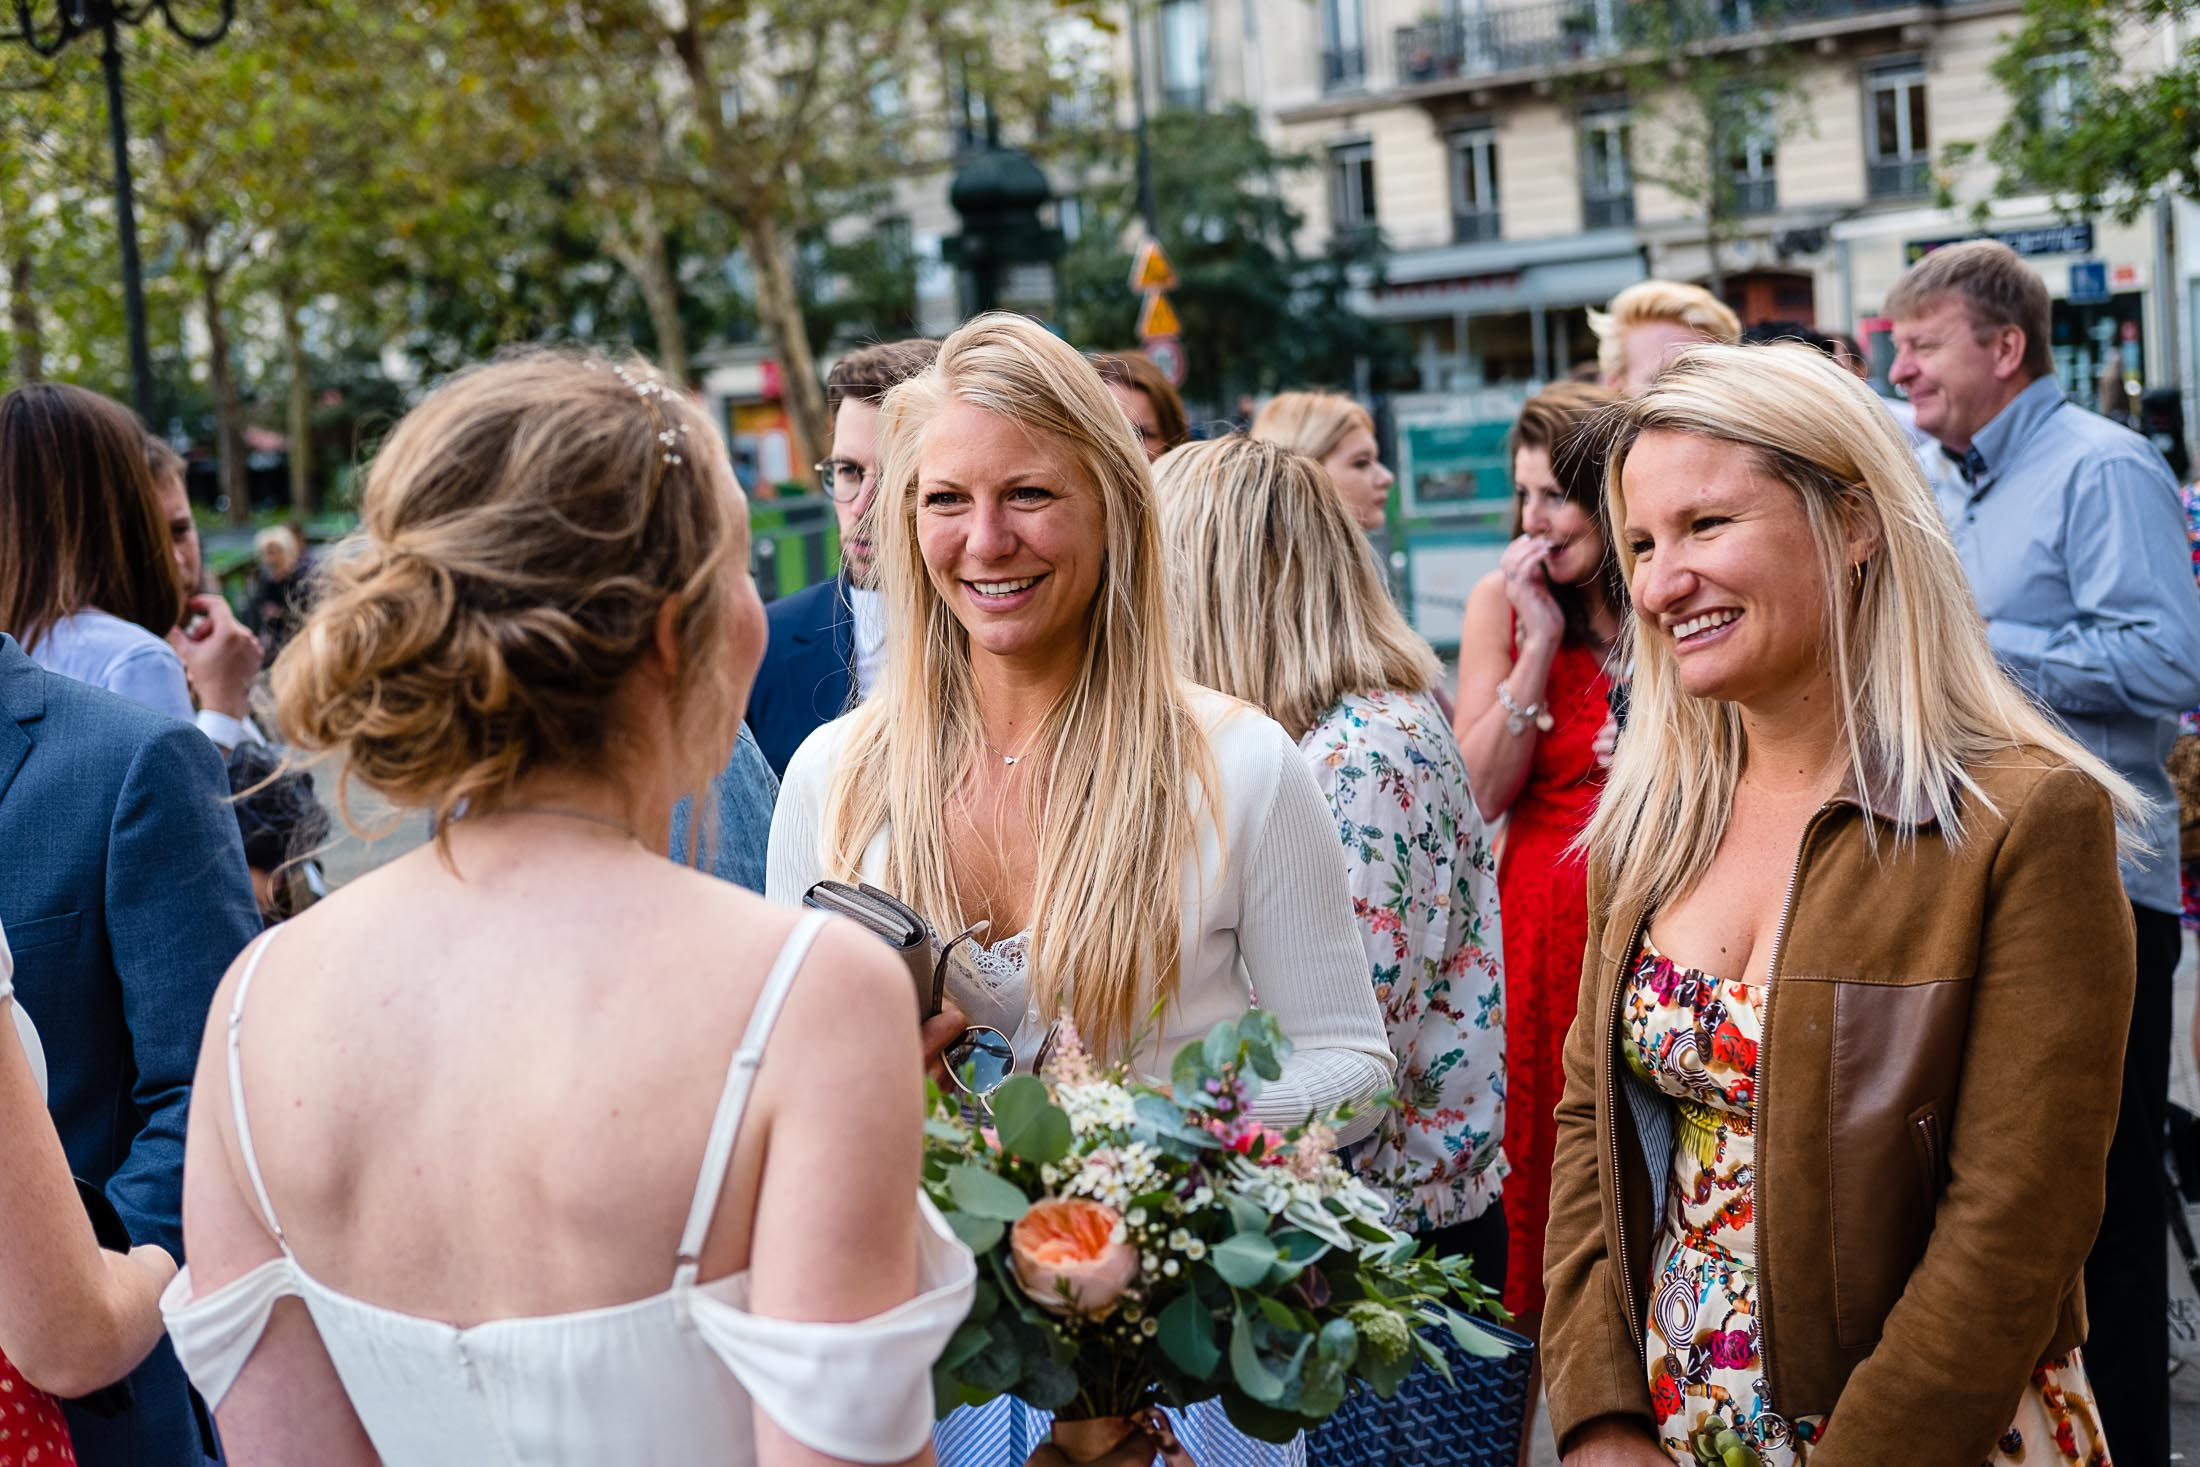 destination_wedding_photographer_paris-24.jpg